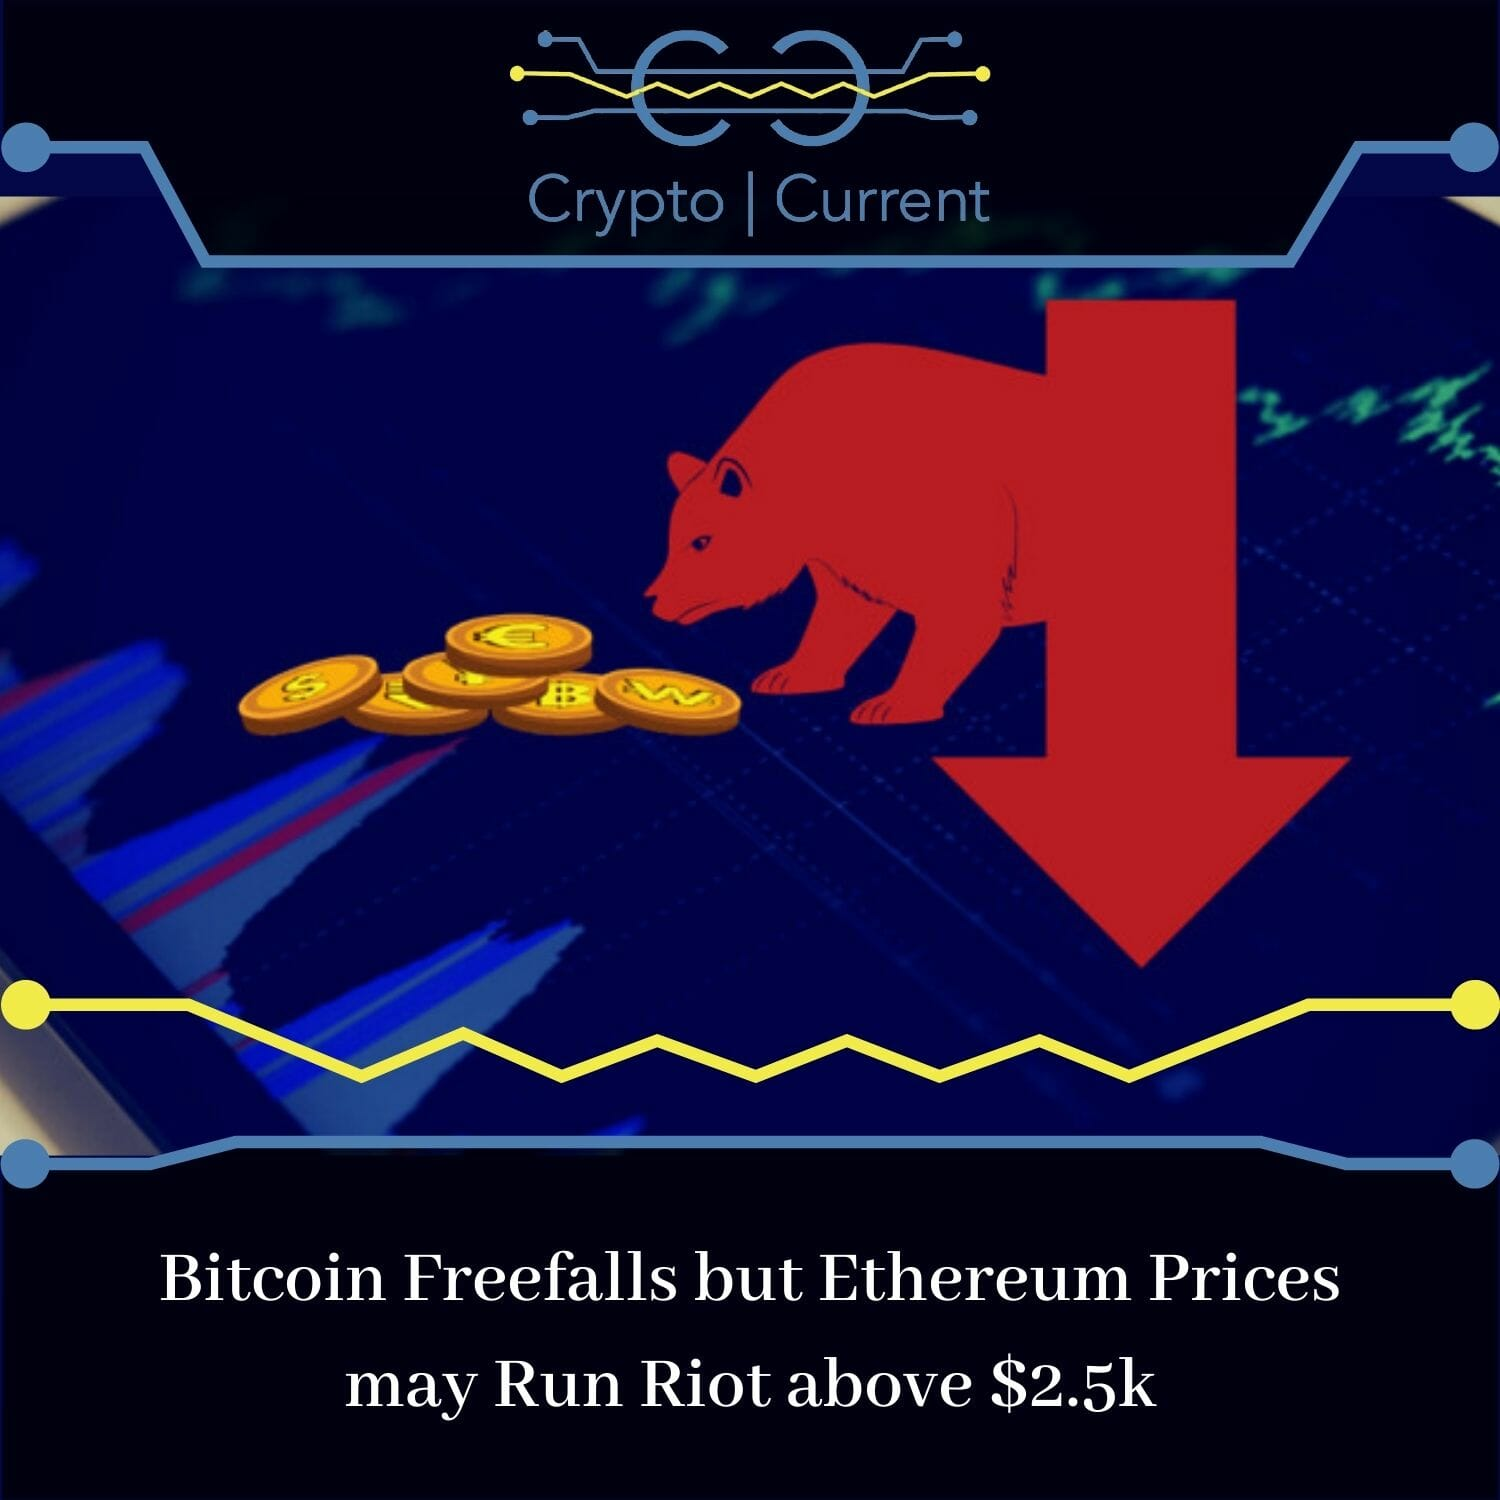 Bitcoin Freefalls but Ethereum Prices may Run Riot above $2.5k